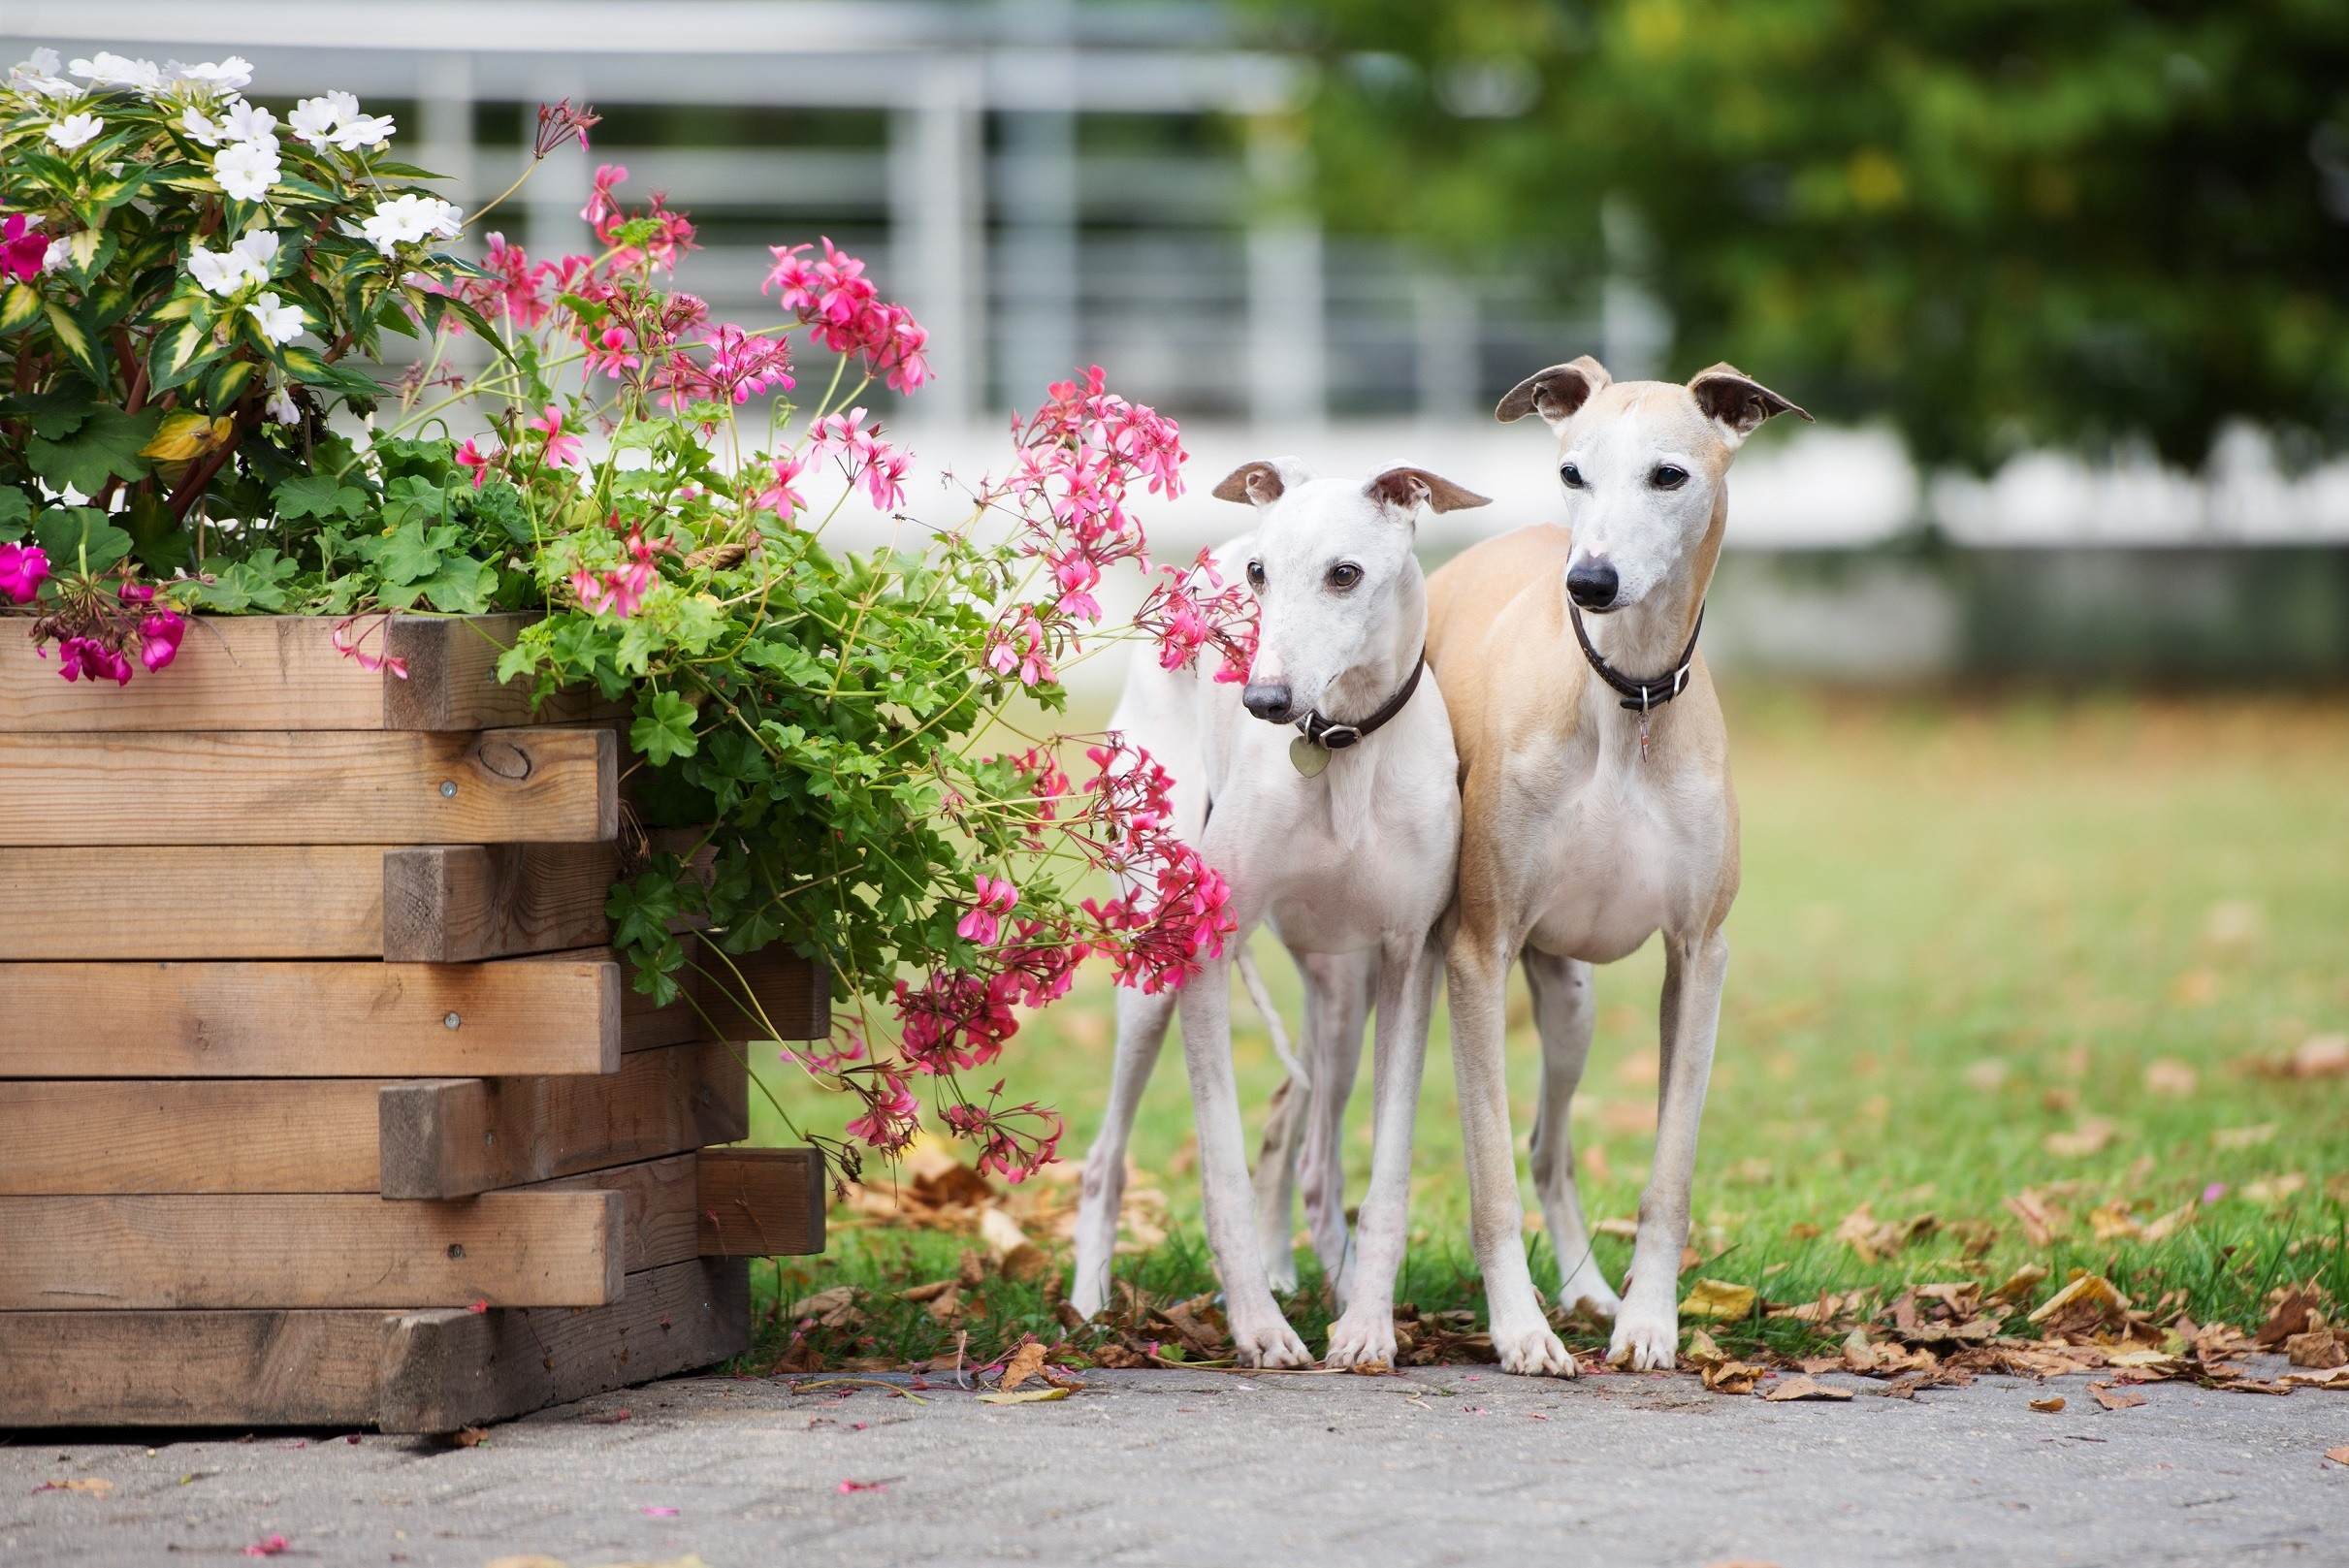 Two whippet dogs in a garden